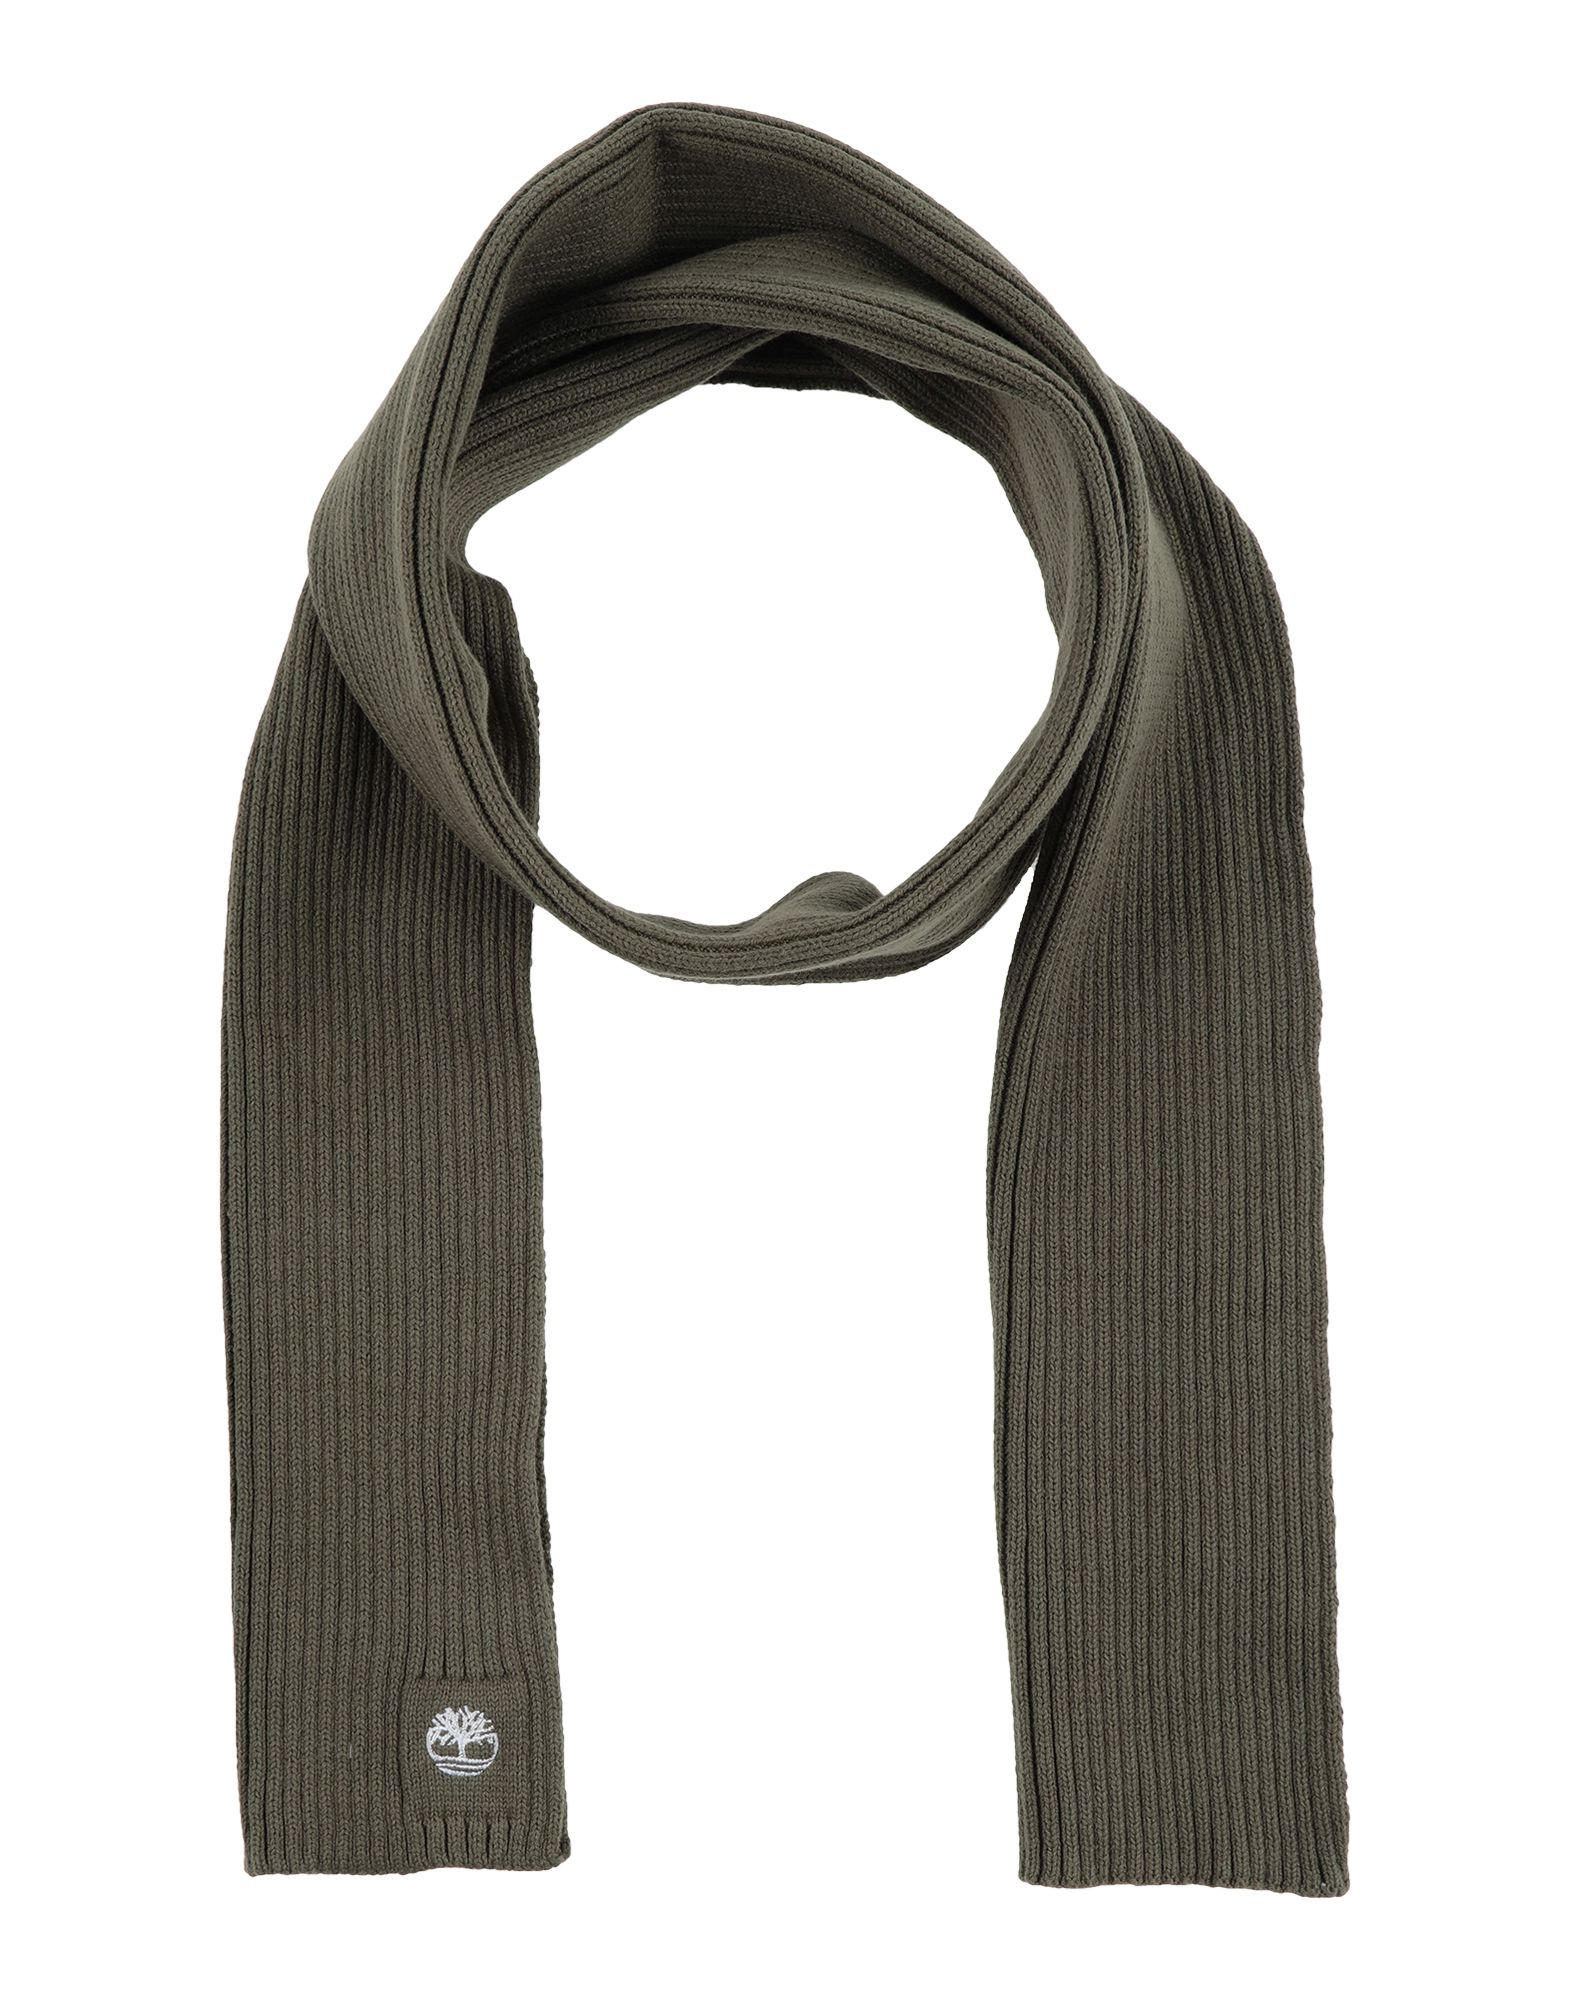 Timberland - Accessories - Oblong Scarves - On Yoox.com